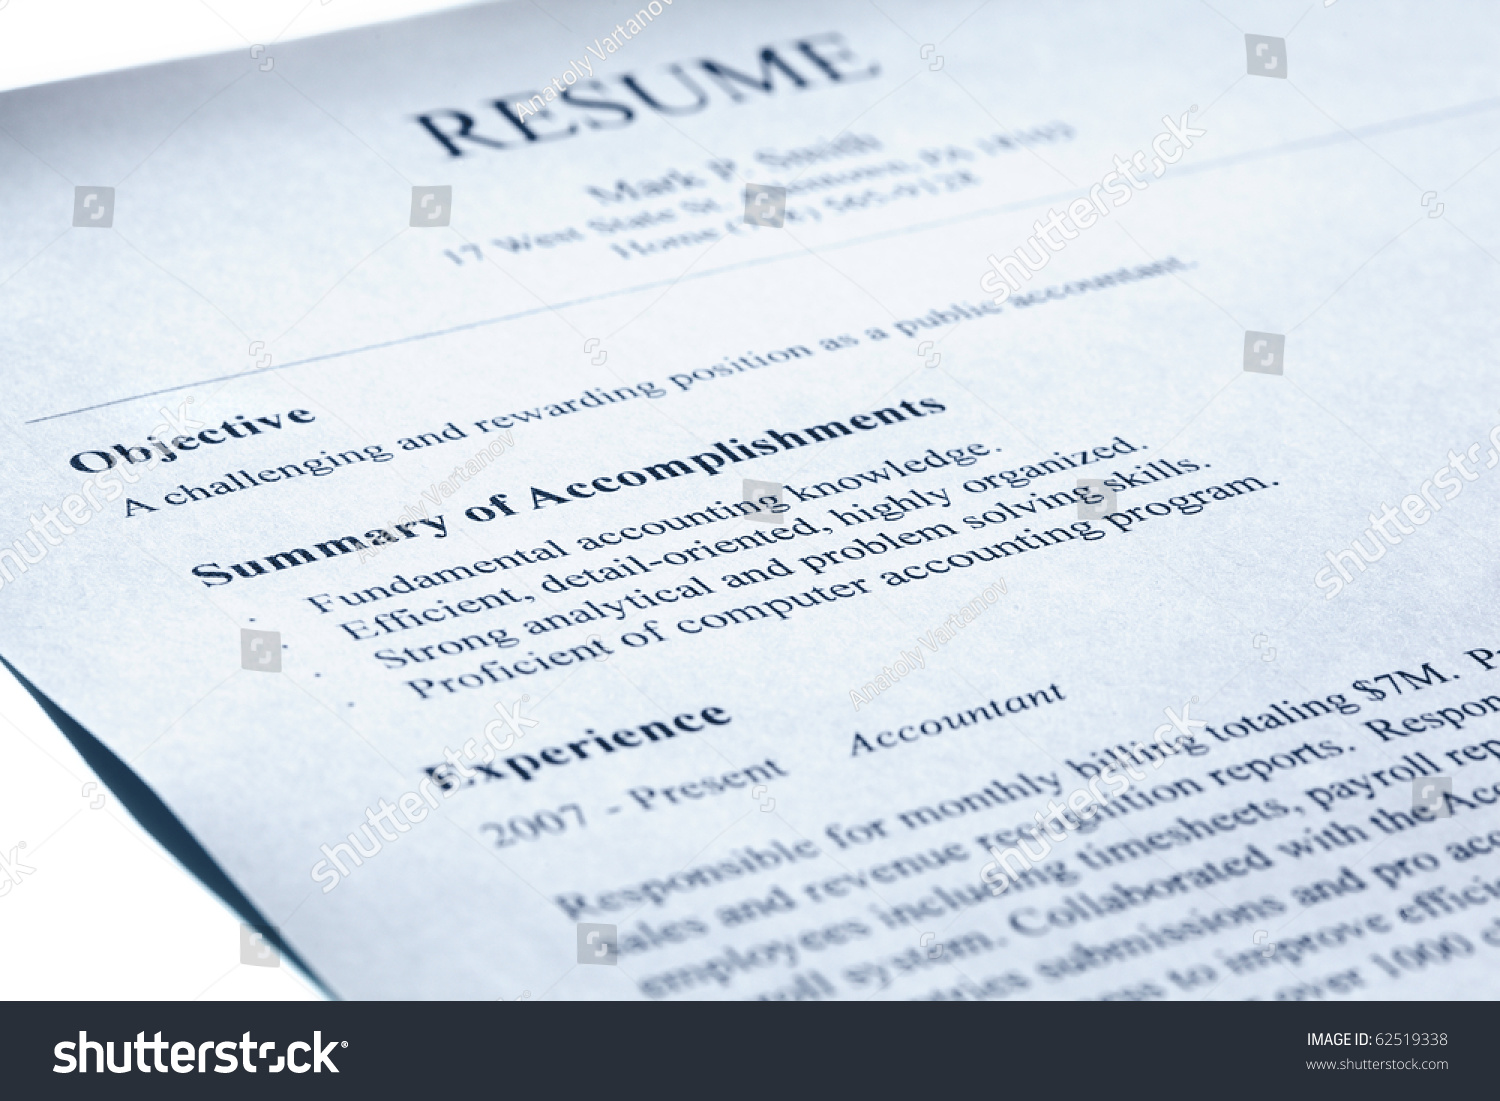 Account Manager Resume Form Title Page Stock Photo 62519338